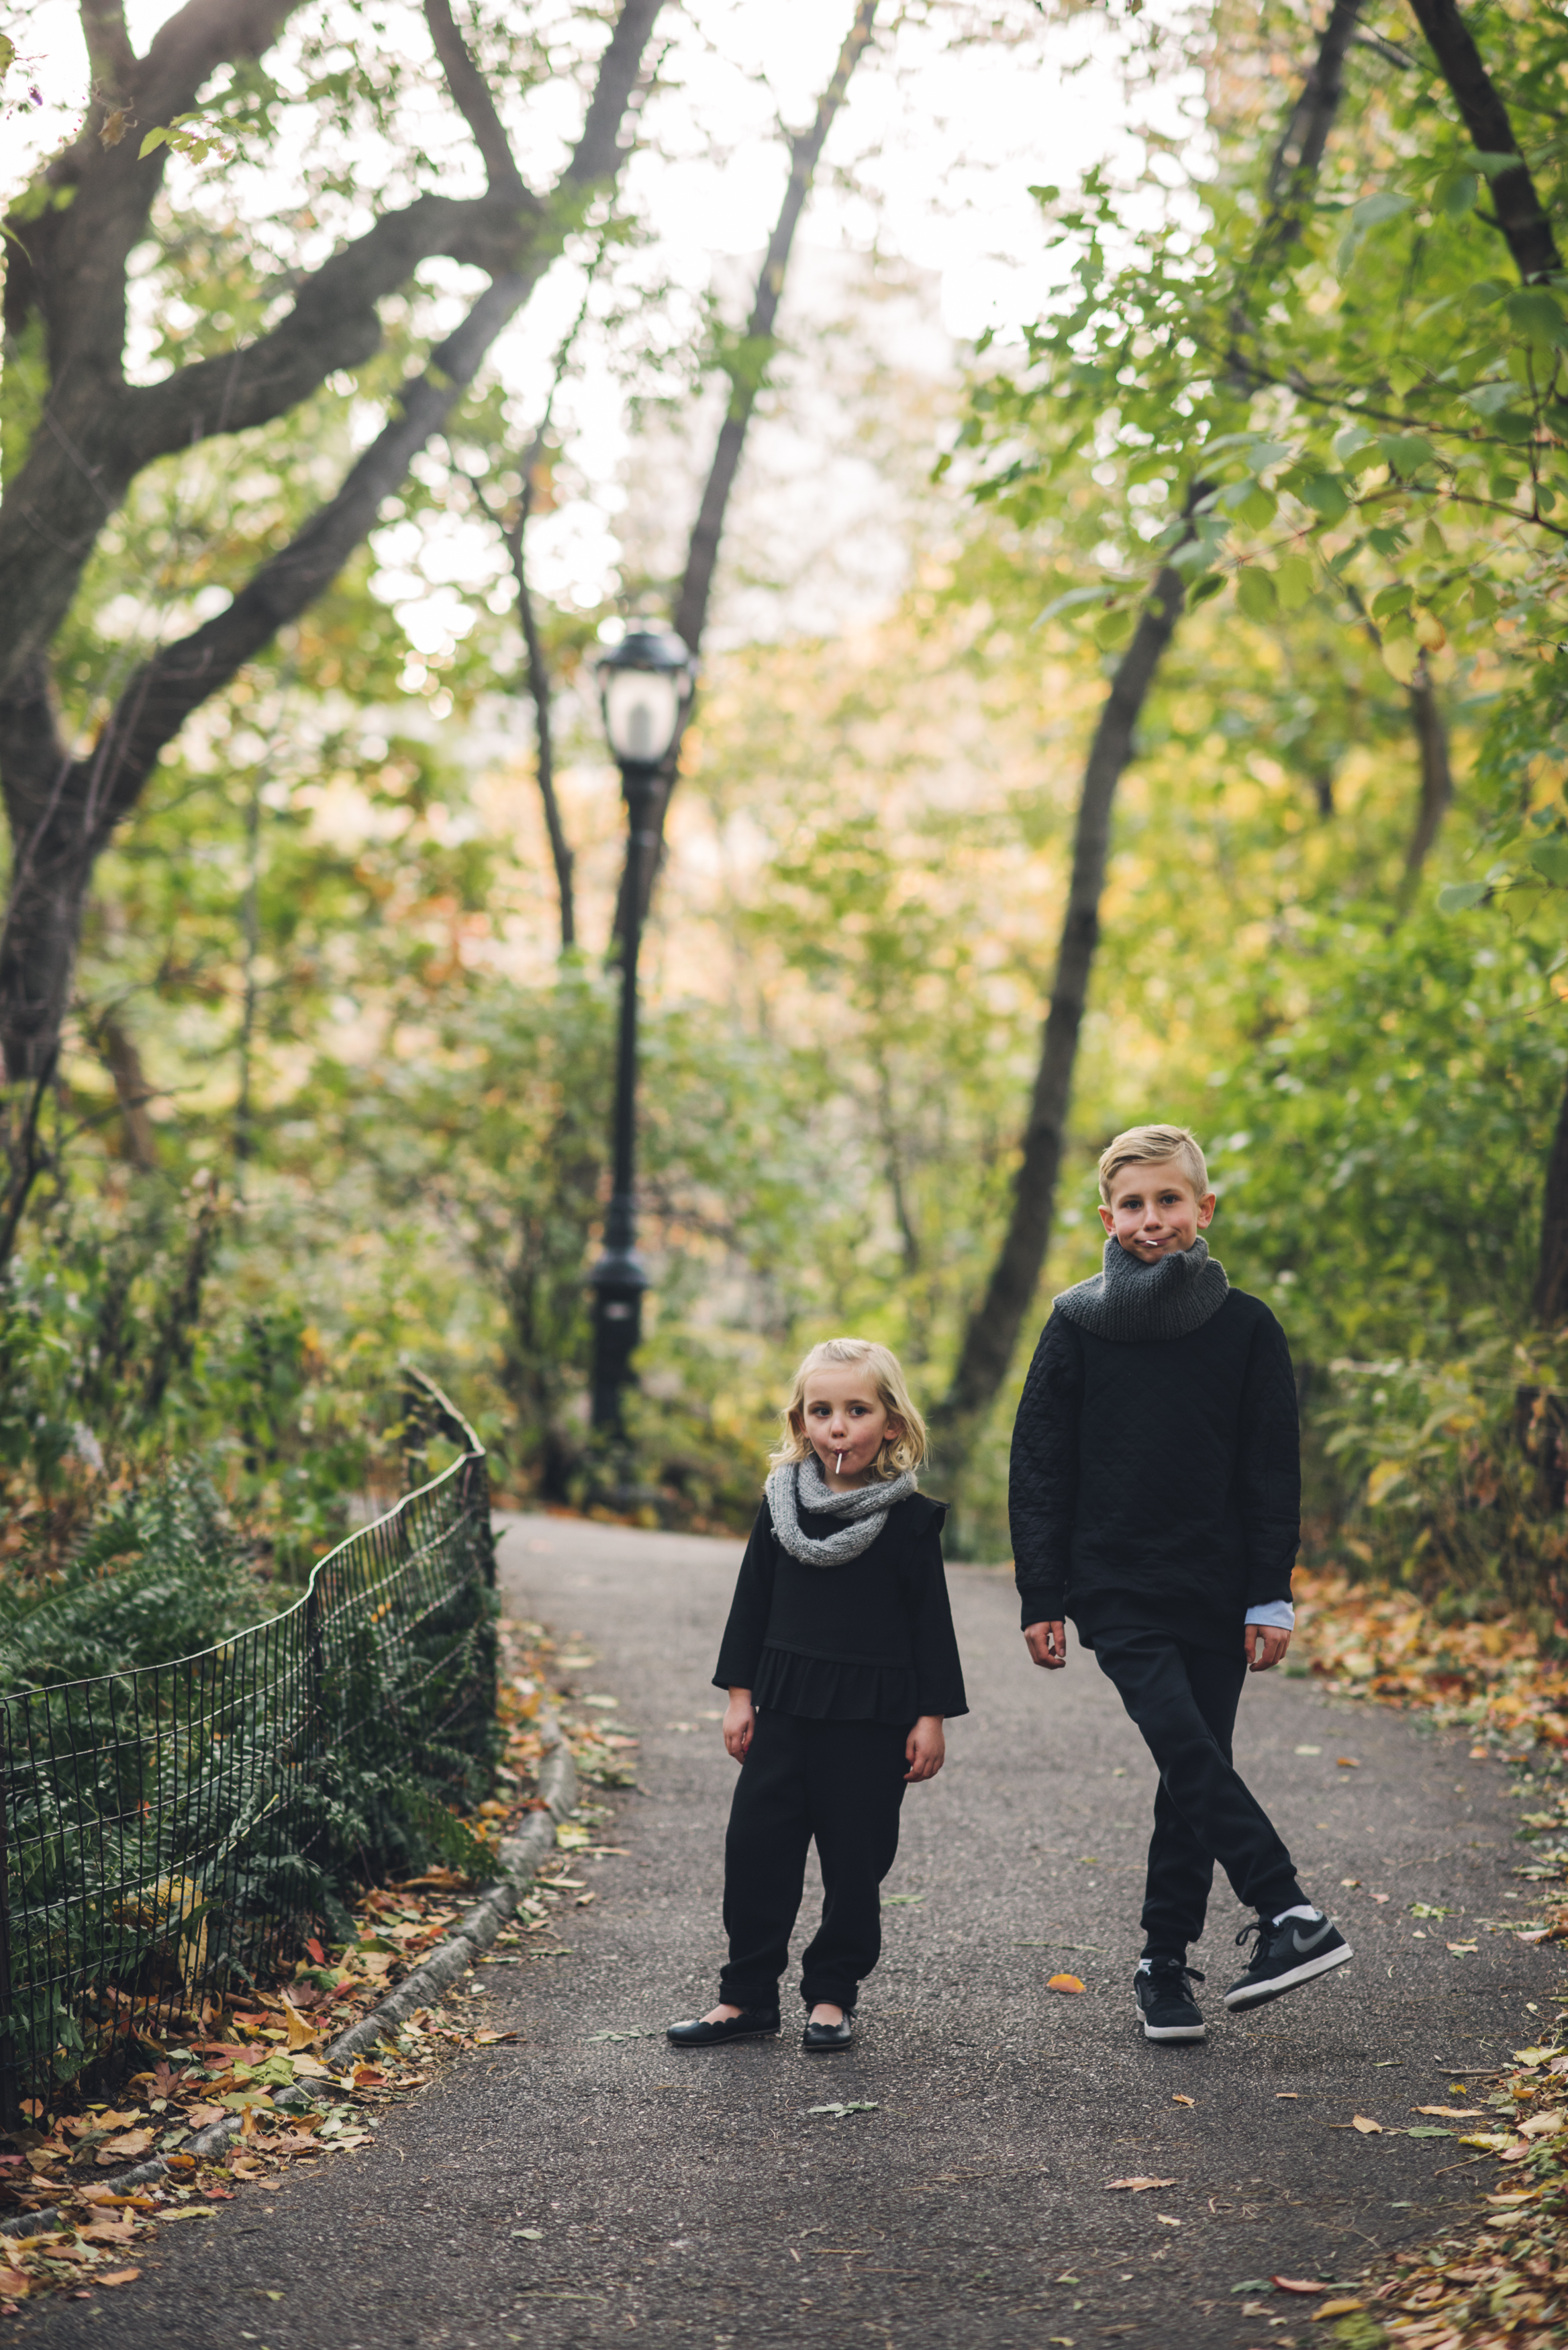 CAPELLA FAMILY SHOOT - CENTRAL PARK NYC - TWOTWENTY by CHI-CHI AGBIM-109.jpg